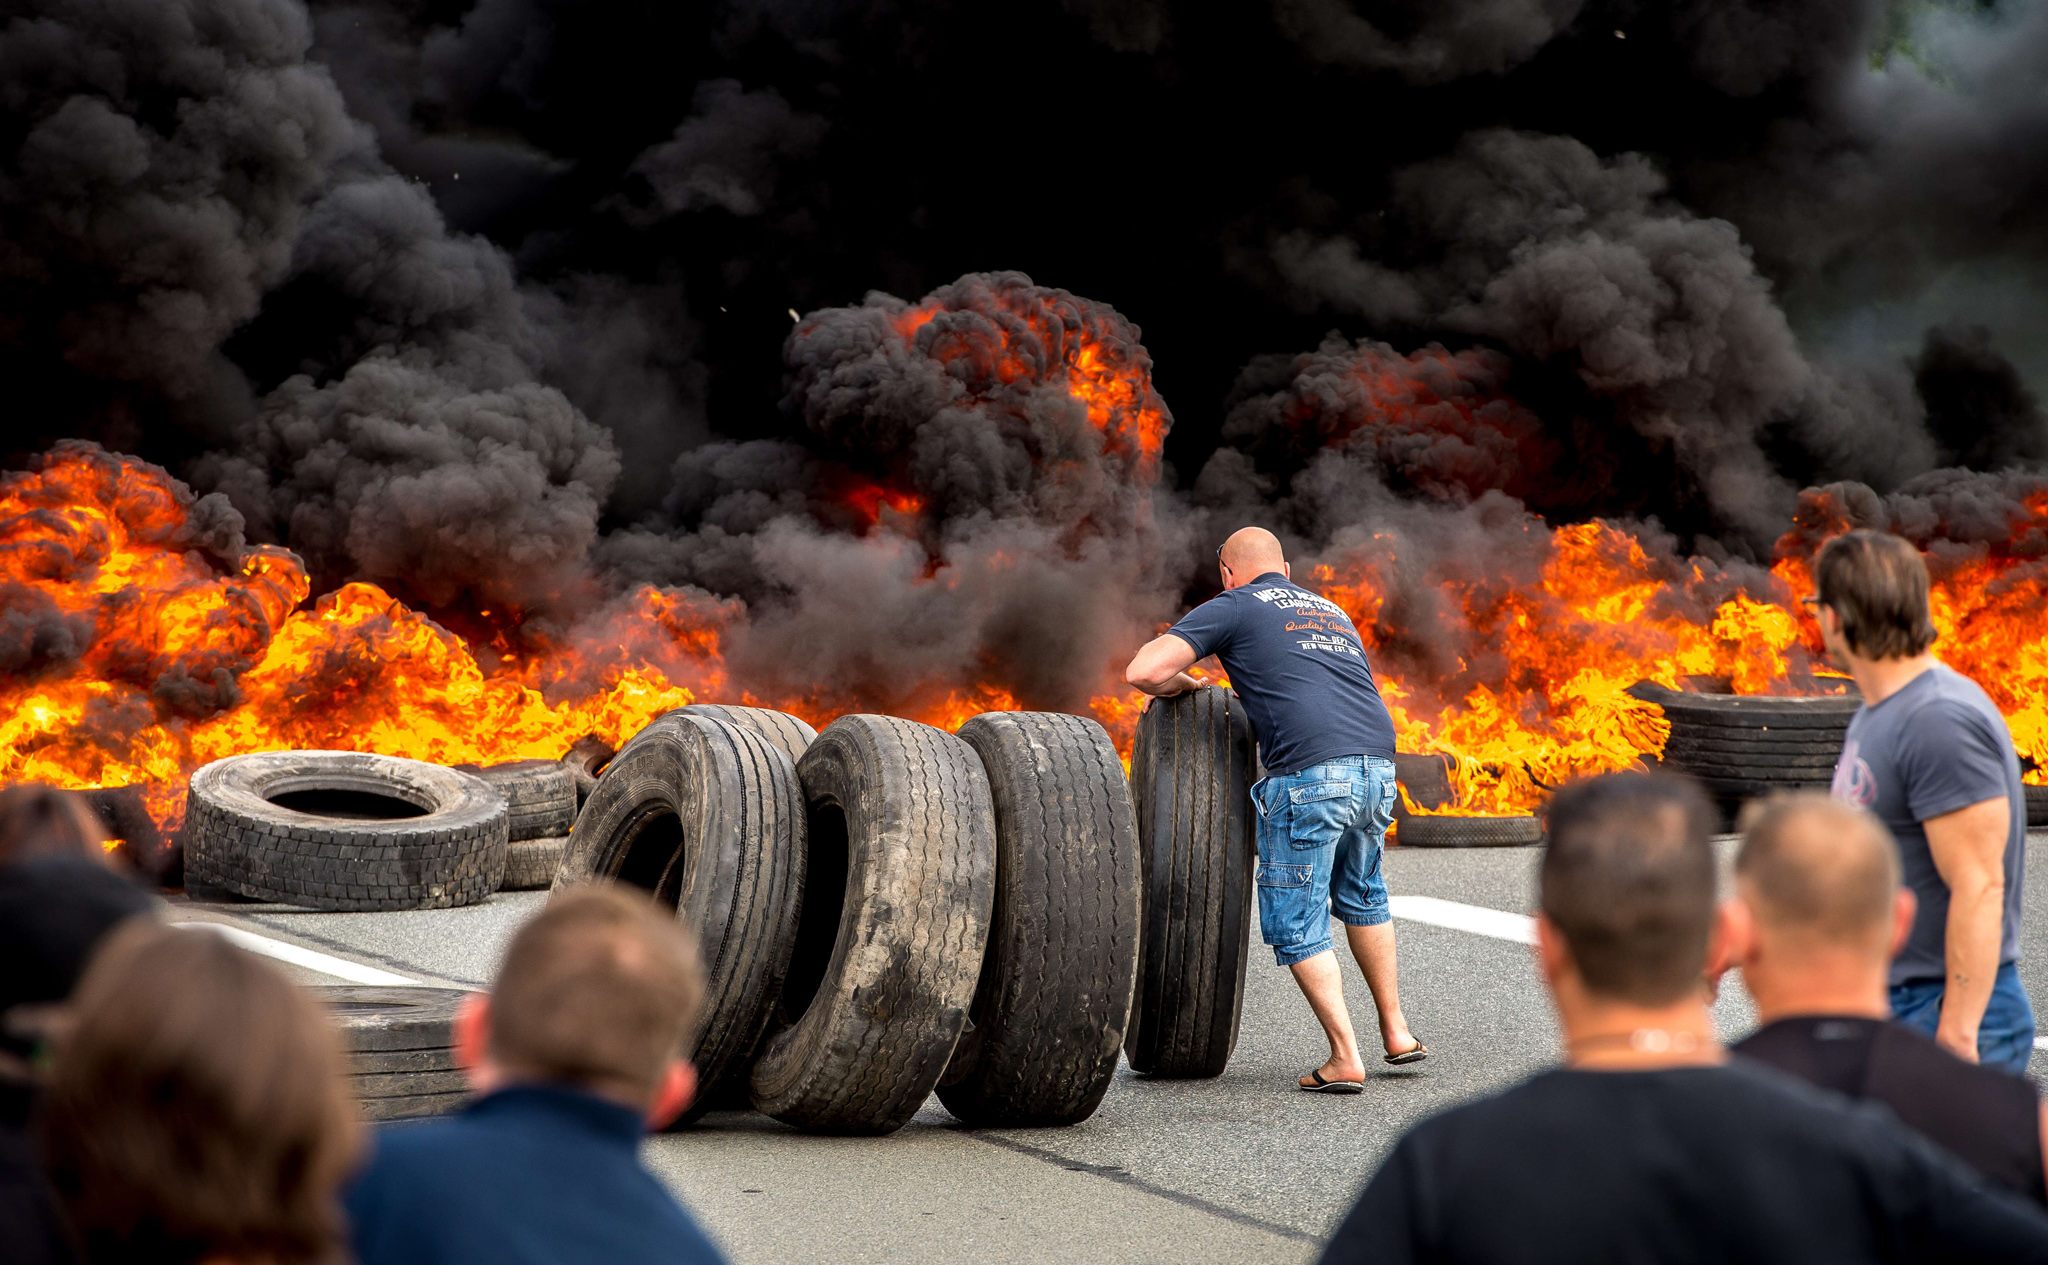 Striking employees of the My Ferry Link company block the access to Calais harbour with burning tyres following the failure of negotiations with French government concerning job cuts.